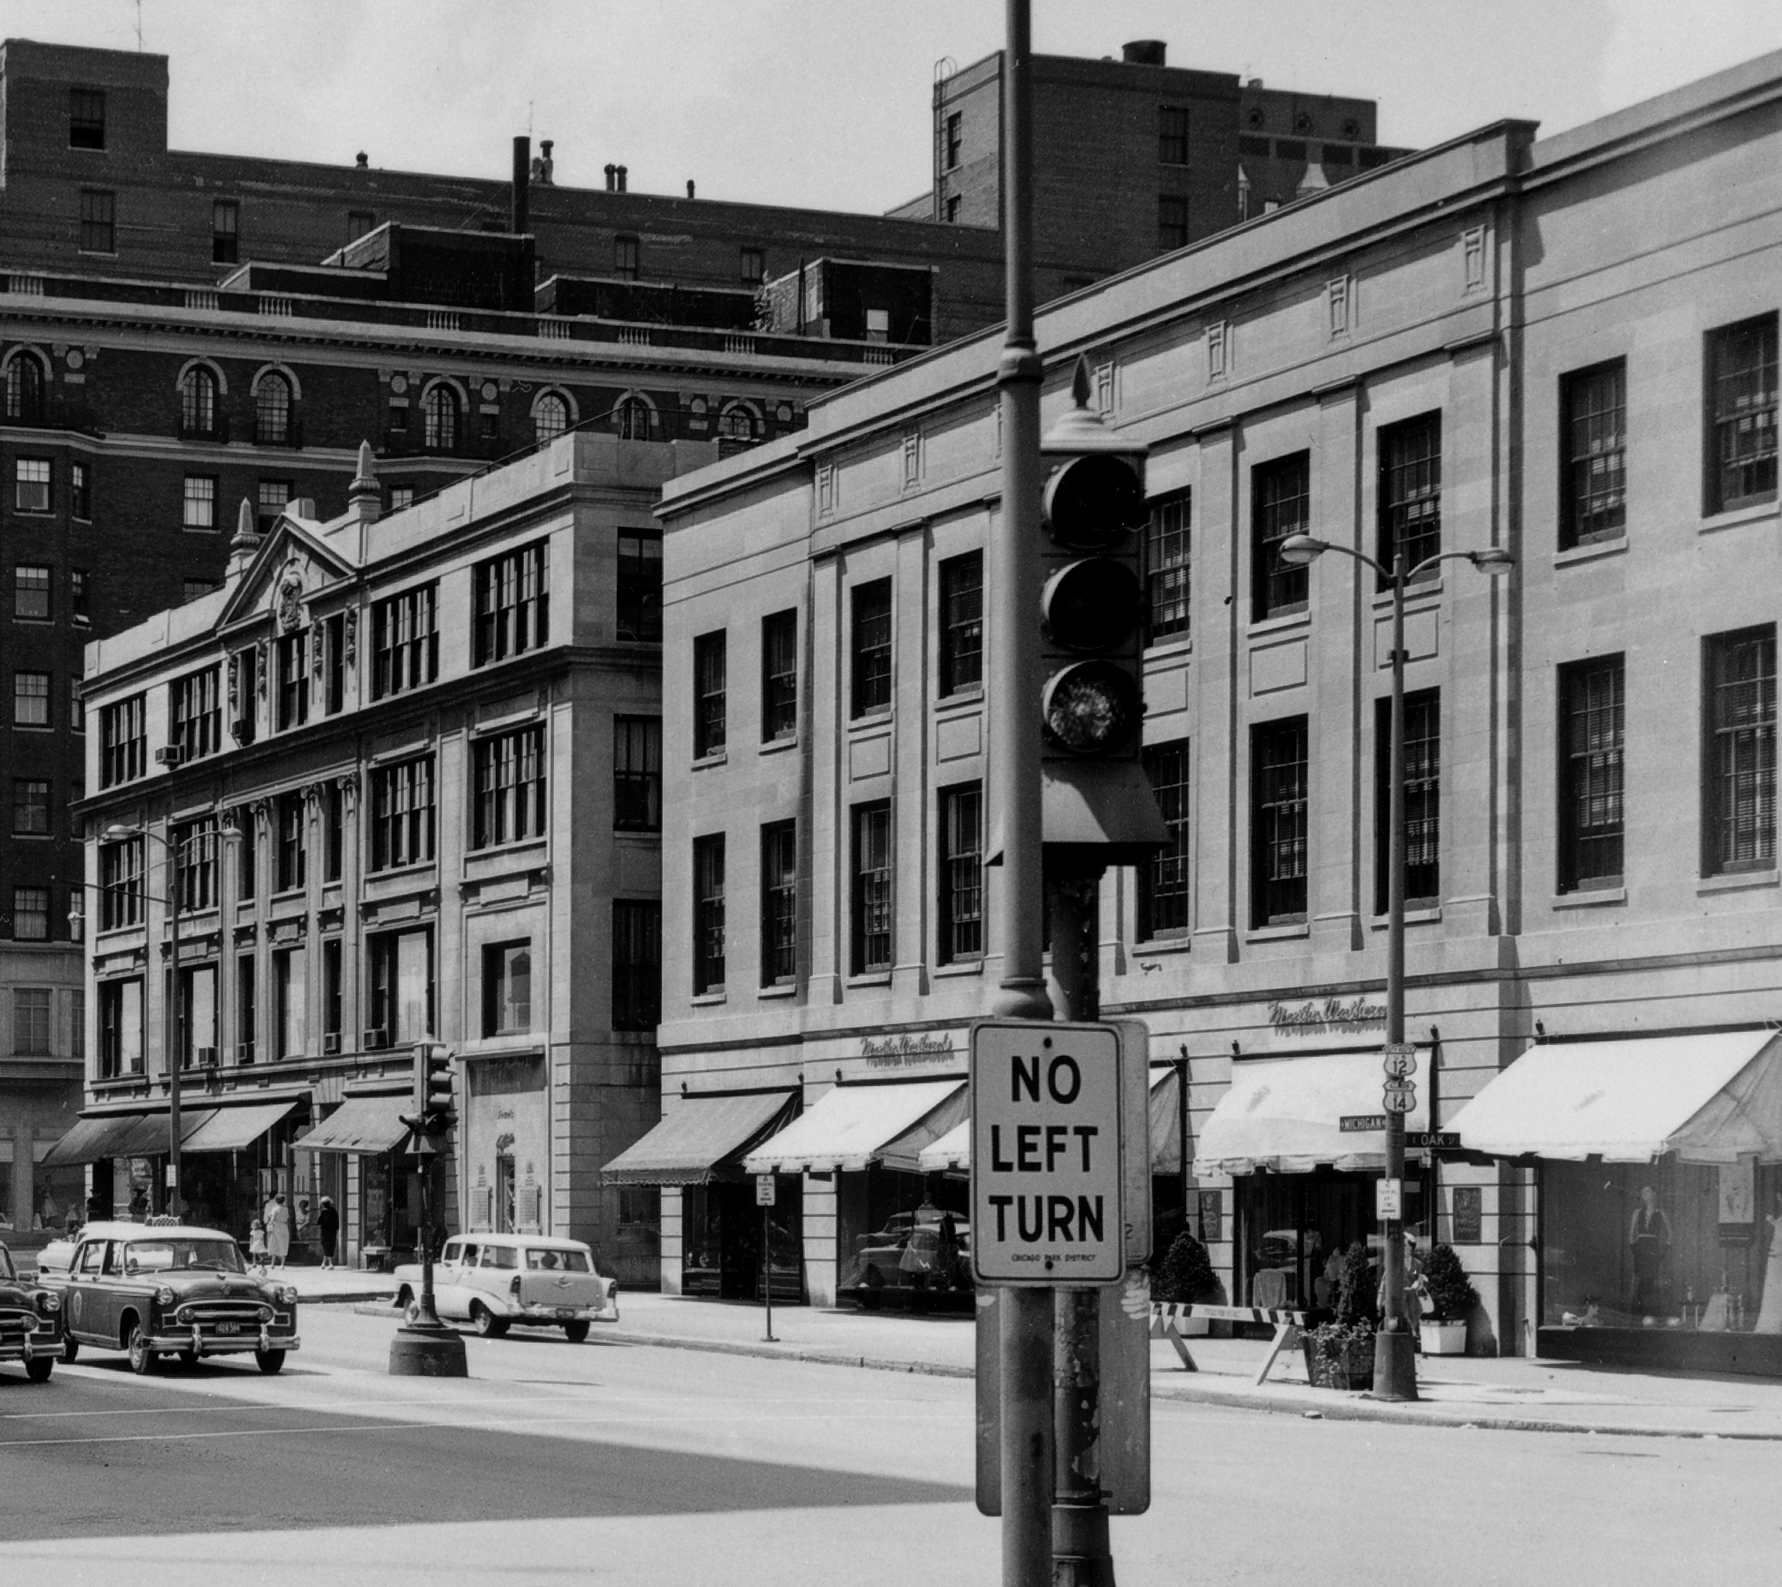 952 N Michigan Ave (Right), 1940s